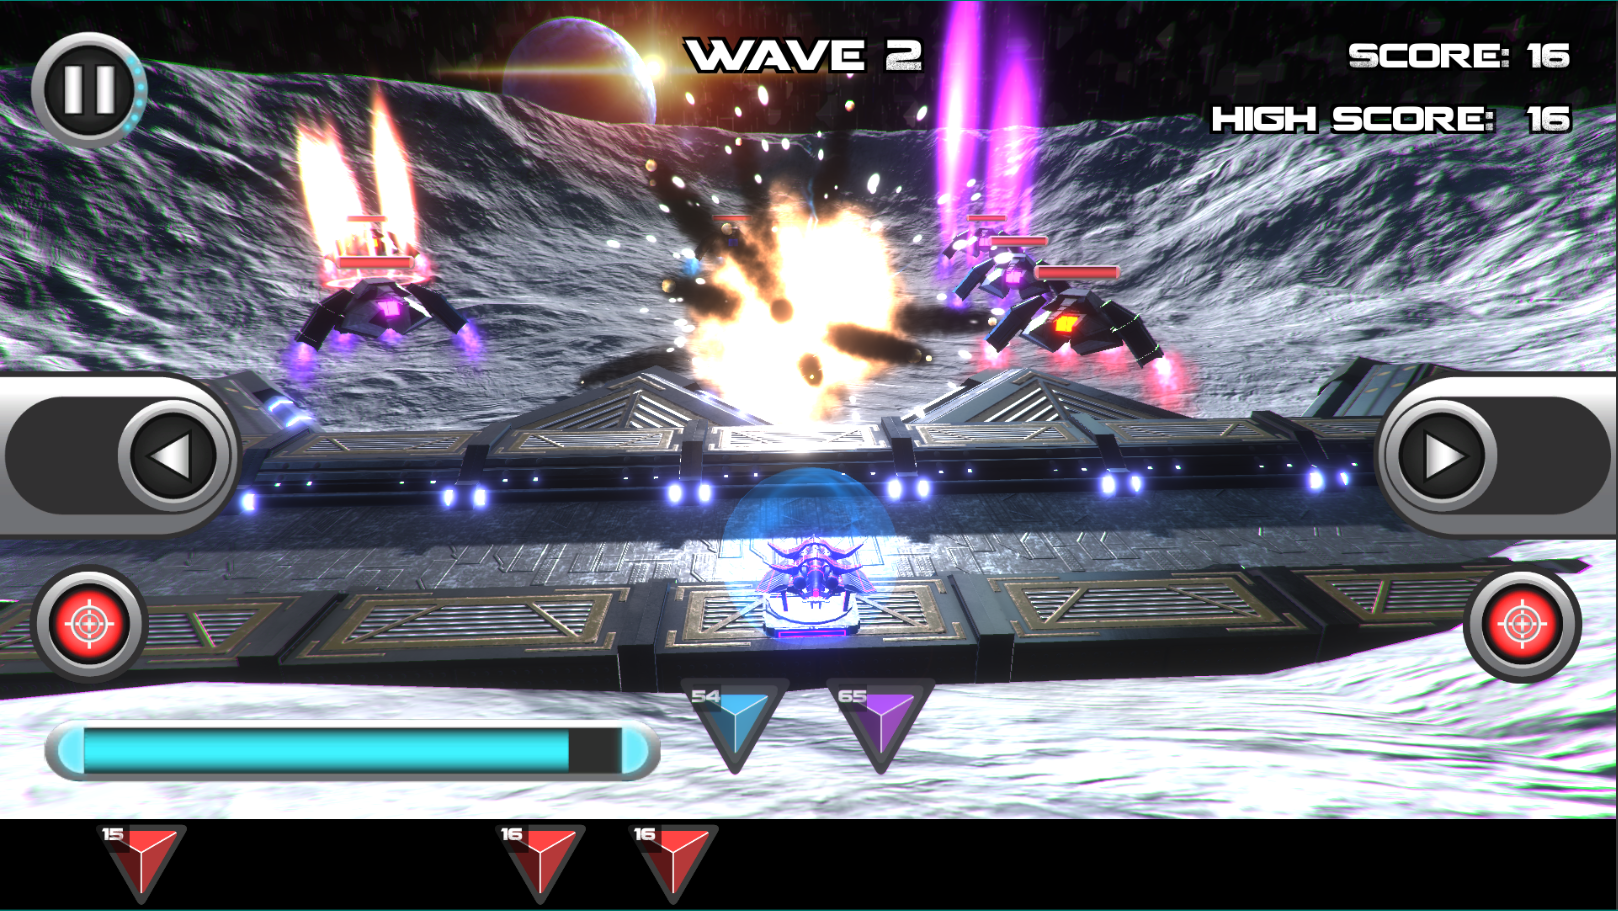 A screenshot of a sci-fi action game called FerroCity.